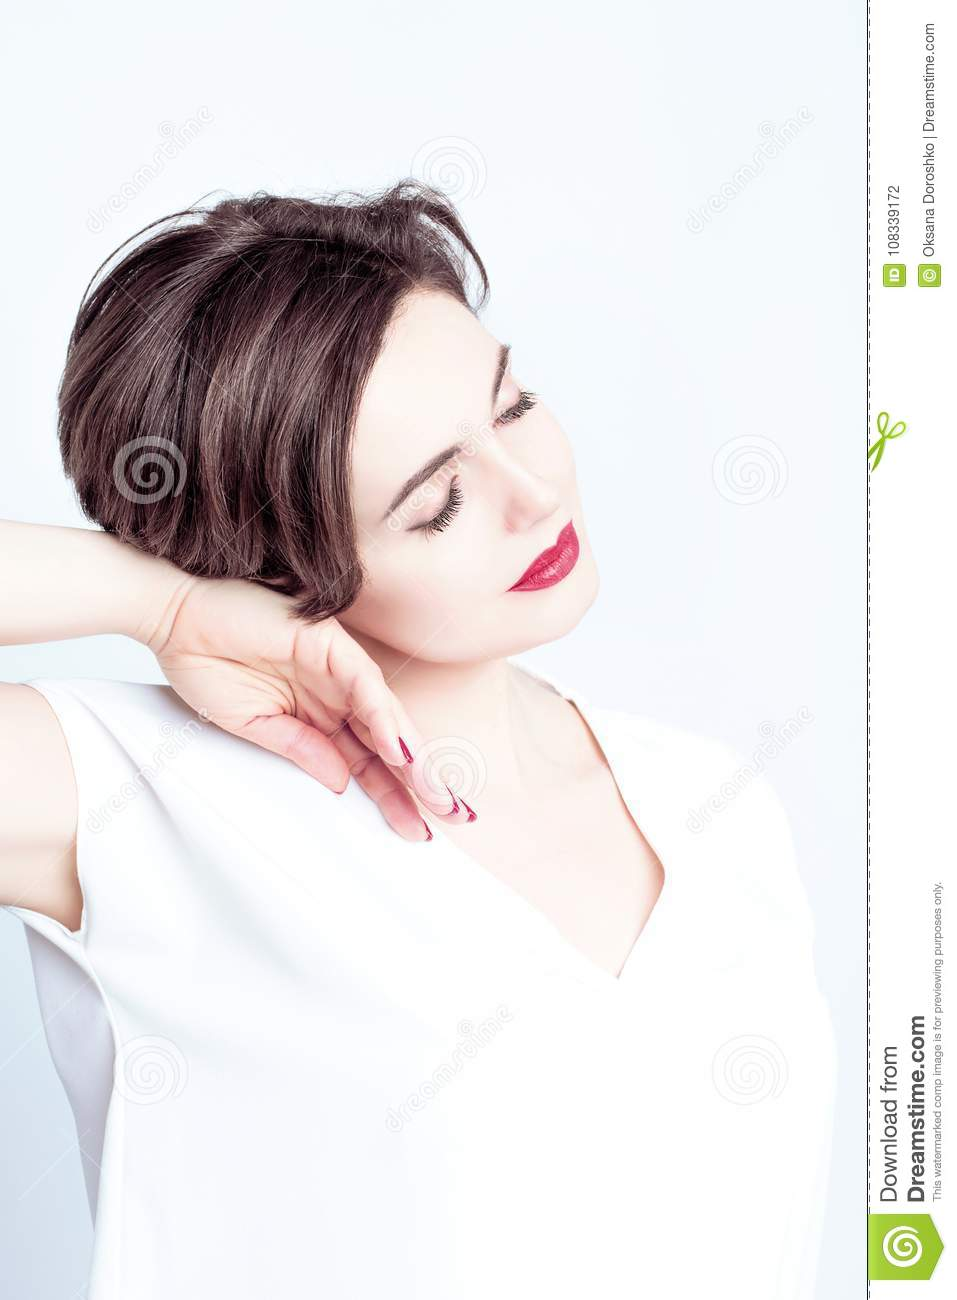 Beautiful And Luxurious Woman With Red Lipstick On Her Lips Haircut